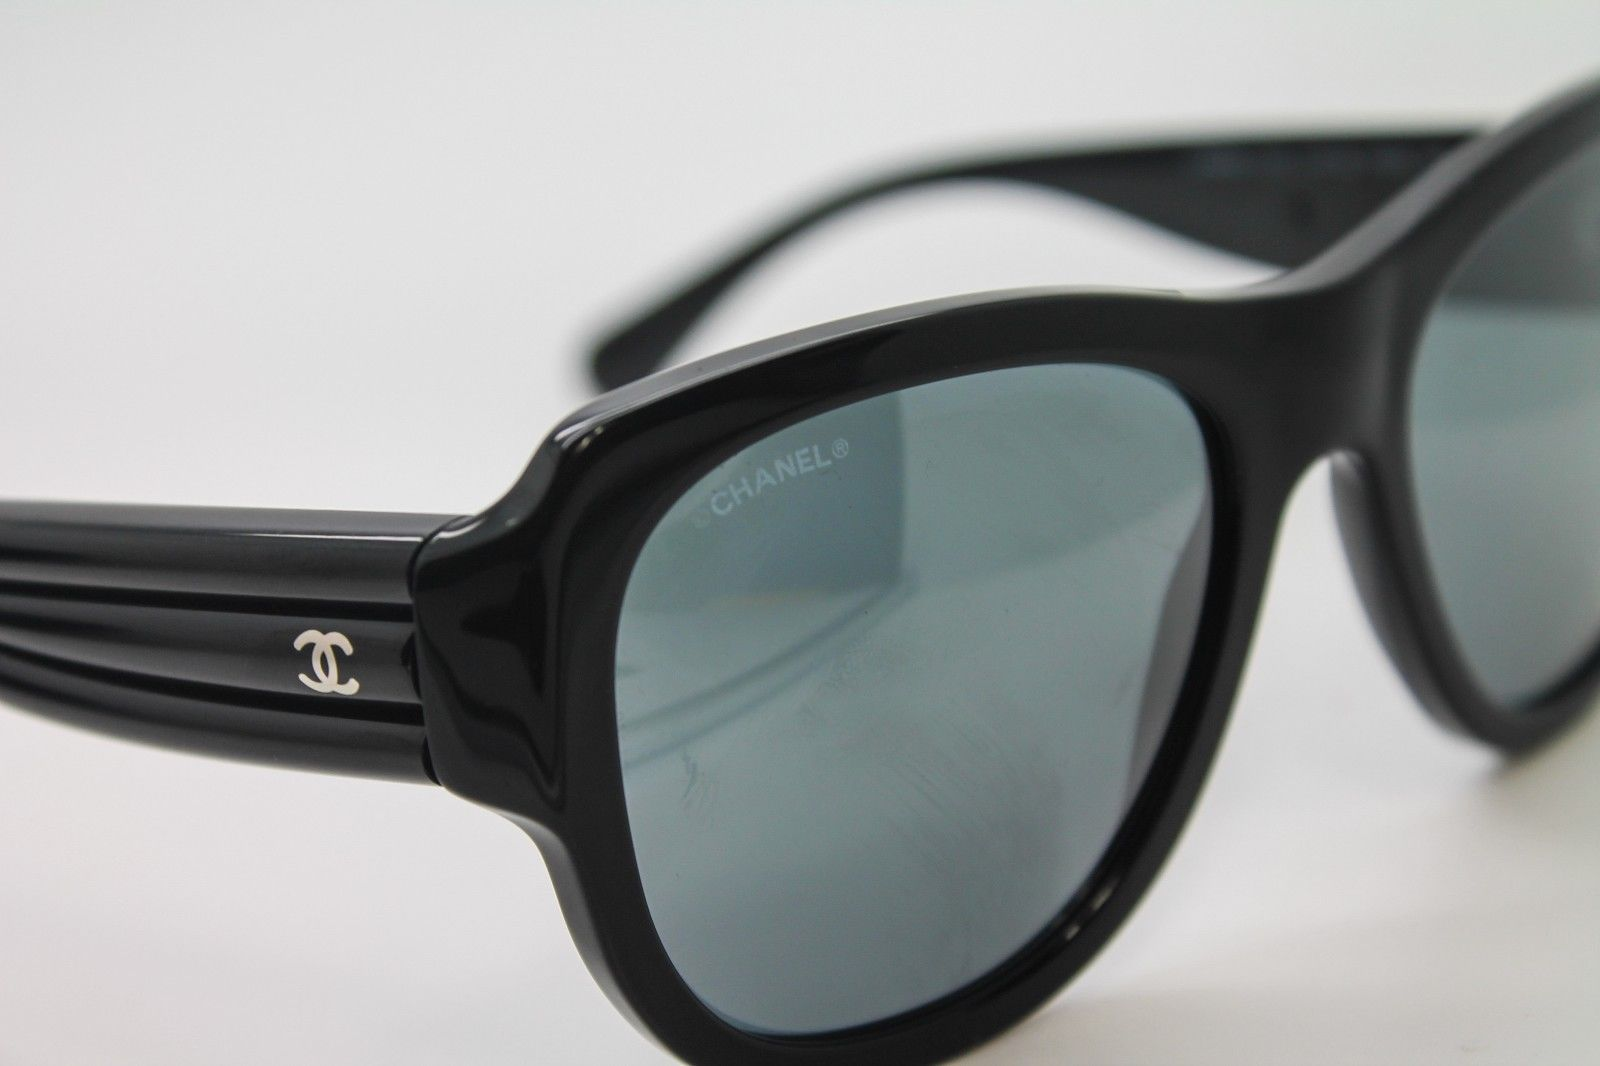 Chanel 5310 sunglasses for Decor my eyes